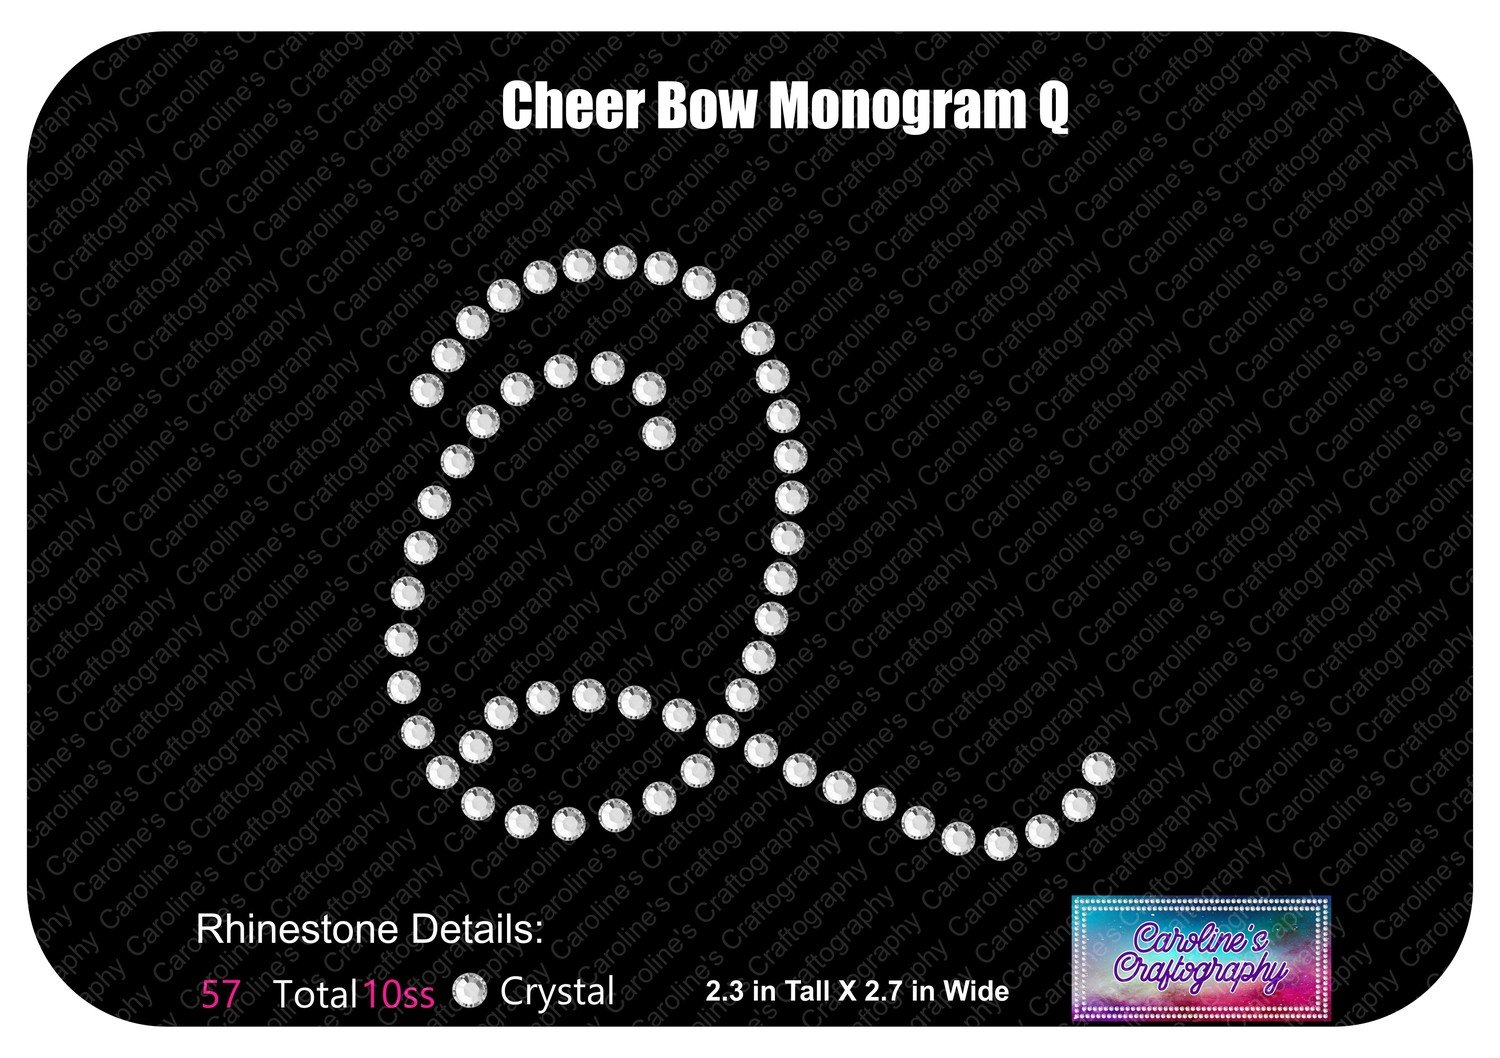 Q Monogram Cheer Add-on Stone